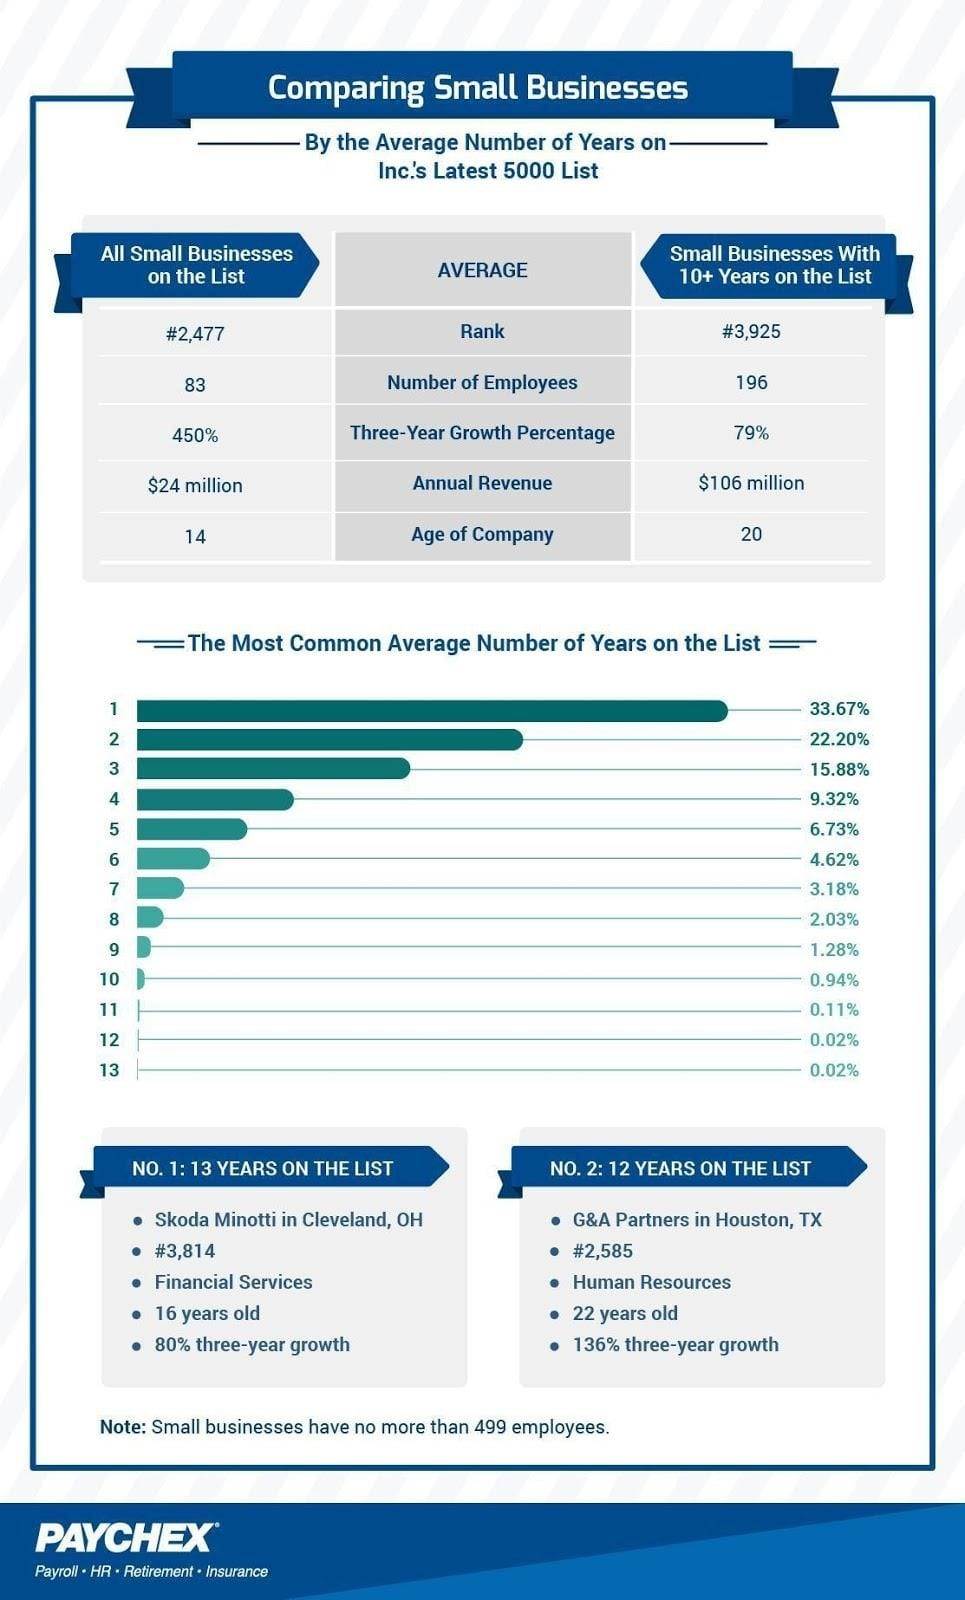 Comparing Small Businesses by Average Number of Years on Inc. 5000 List